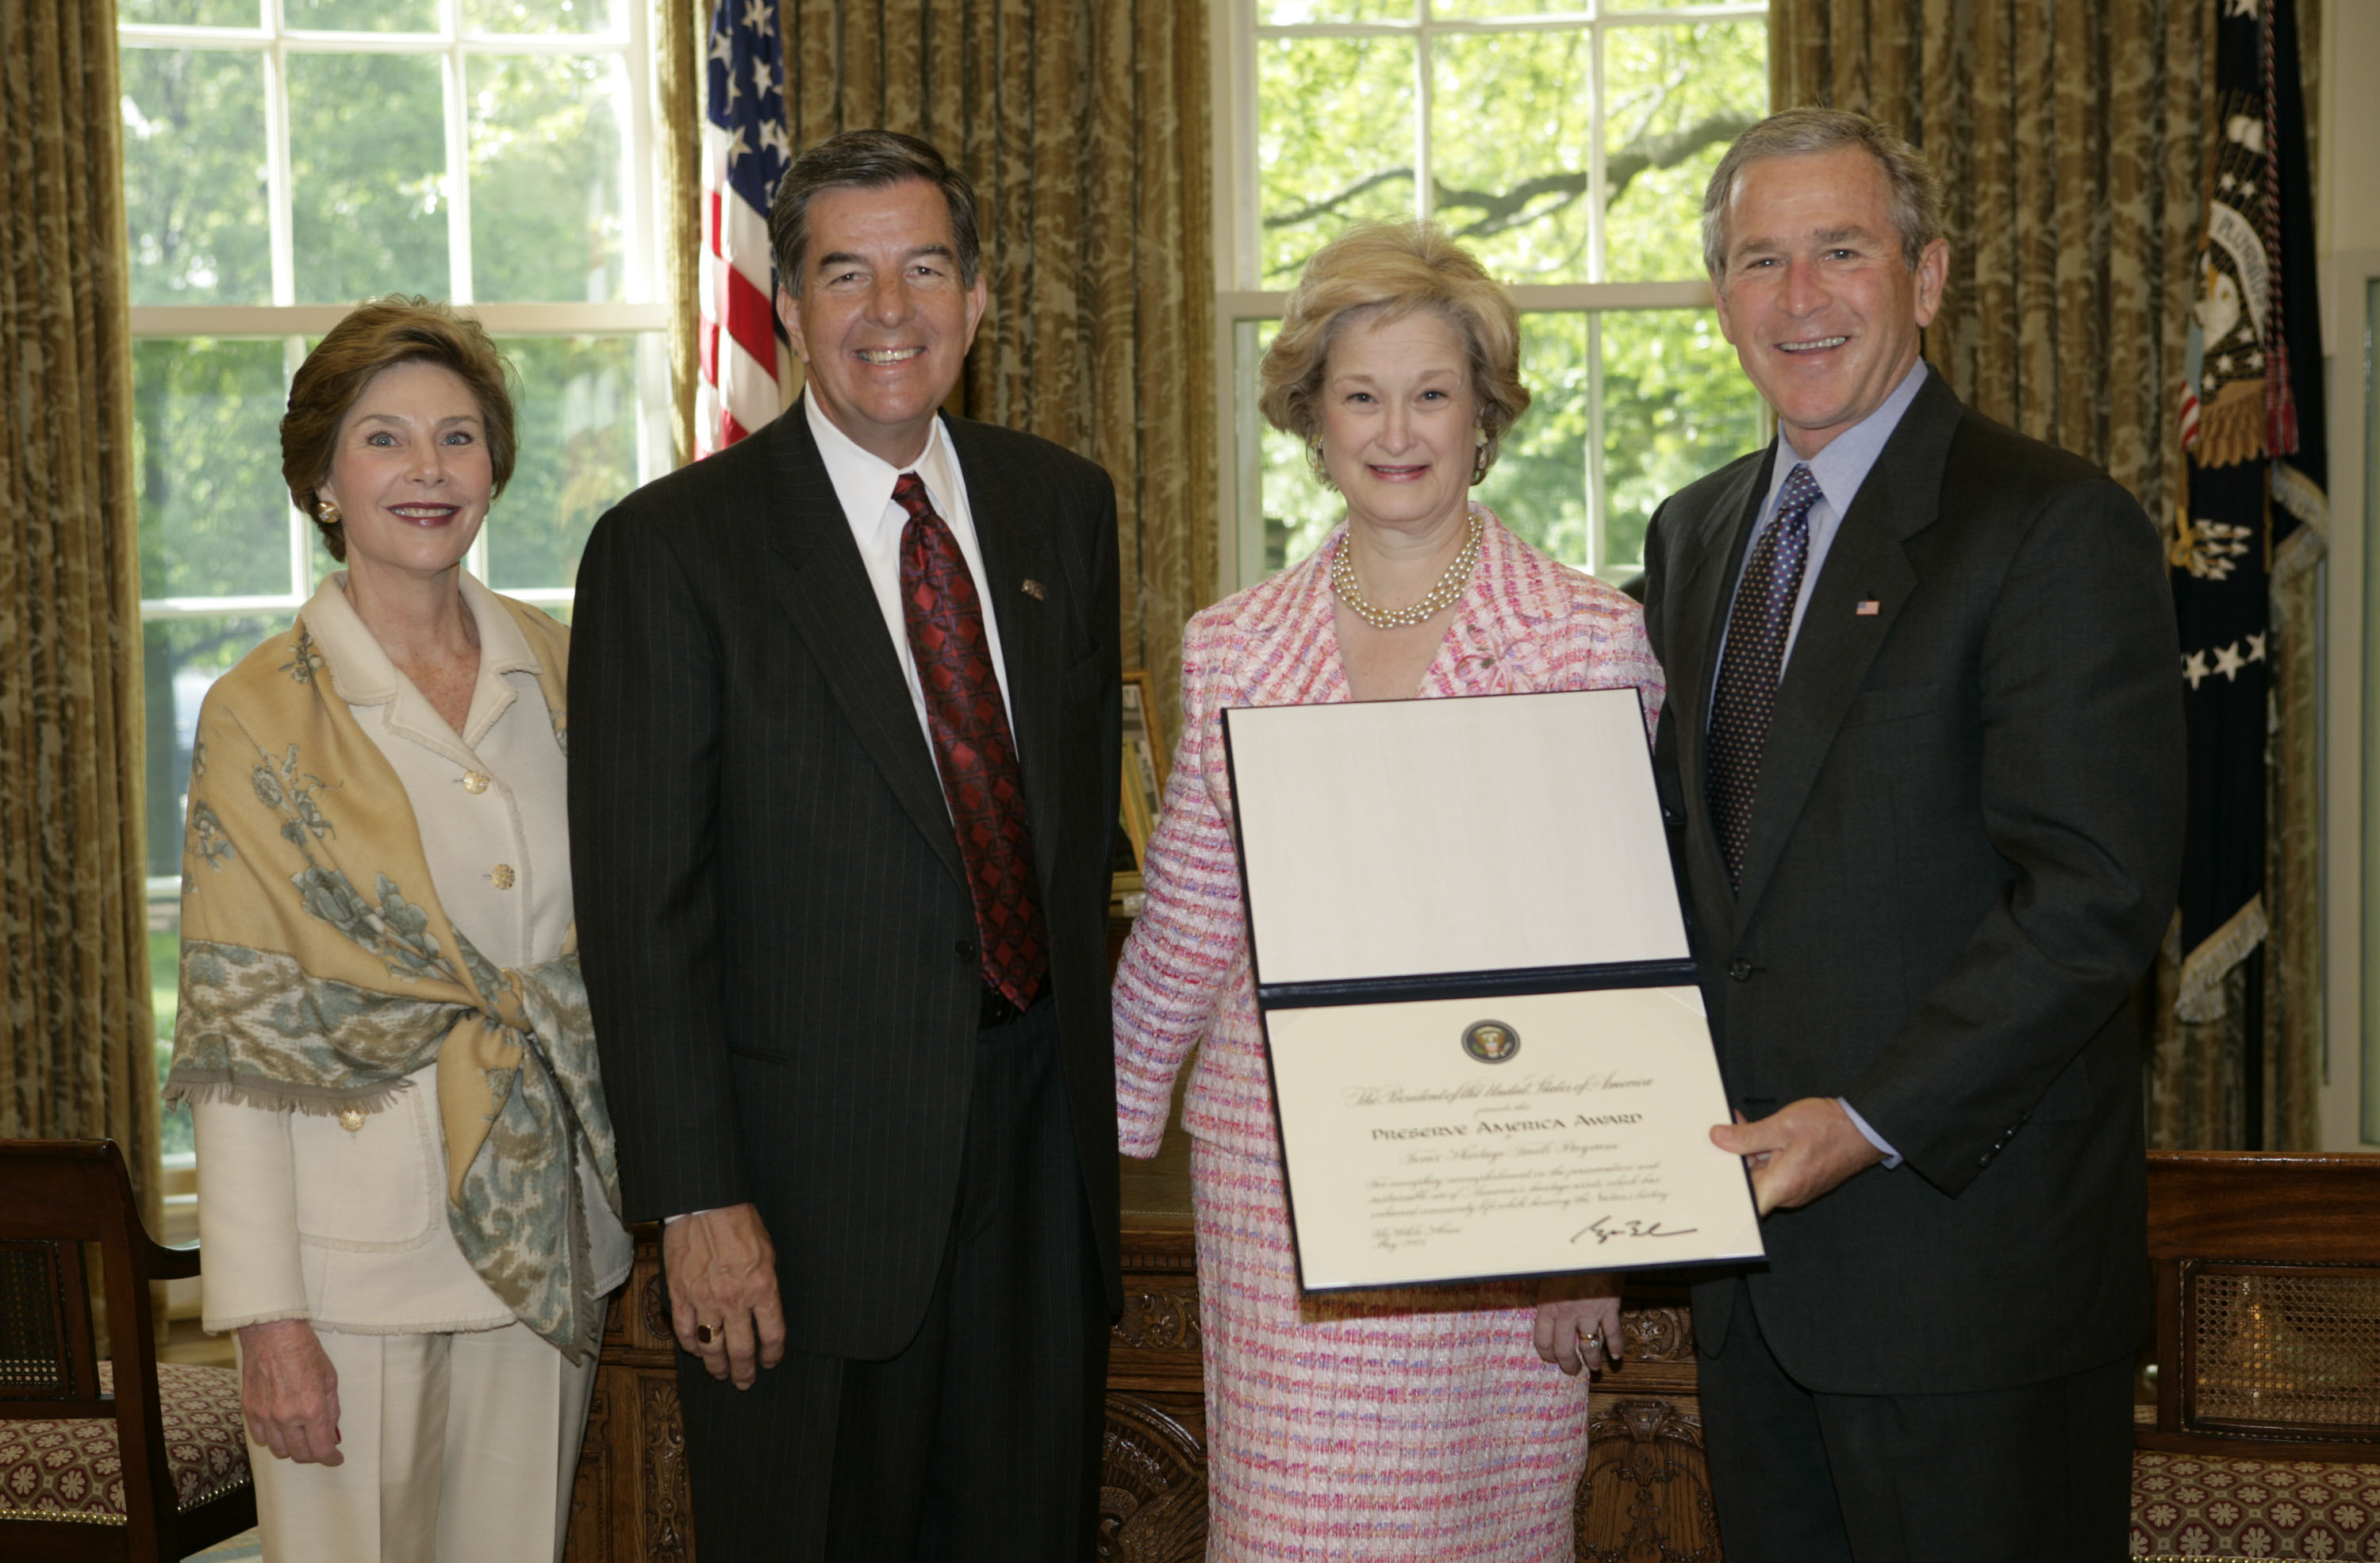 President George W. Bush and Laura Bush present the 2005 Preserve America Presidential Award to members of the Texas Historical Commission in the Oval Office Monday, May 2, 2005. They are Larry Oaks, Executive Director, of Leander, Texas, and Diane Bumpas, Commissioner, of Dallas. (White House photo by Eric Draper)